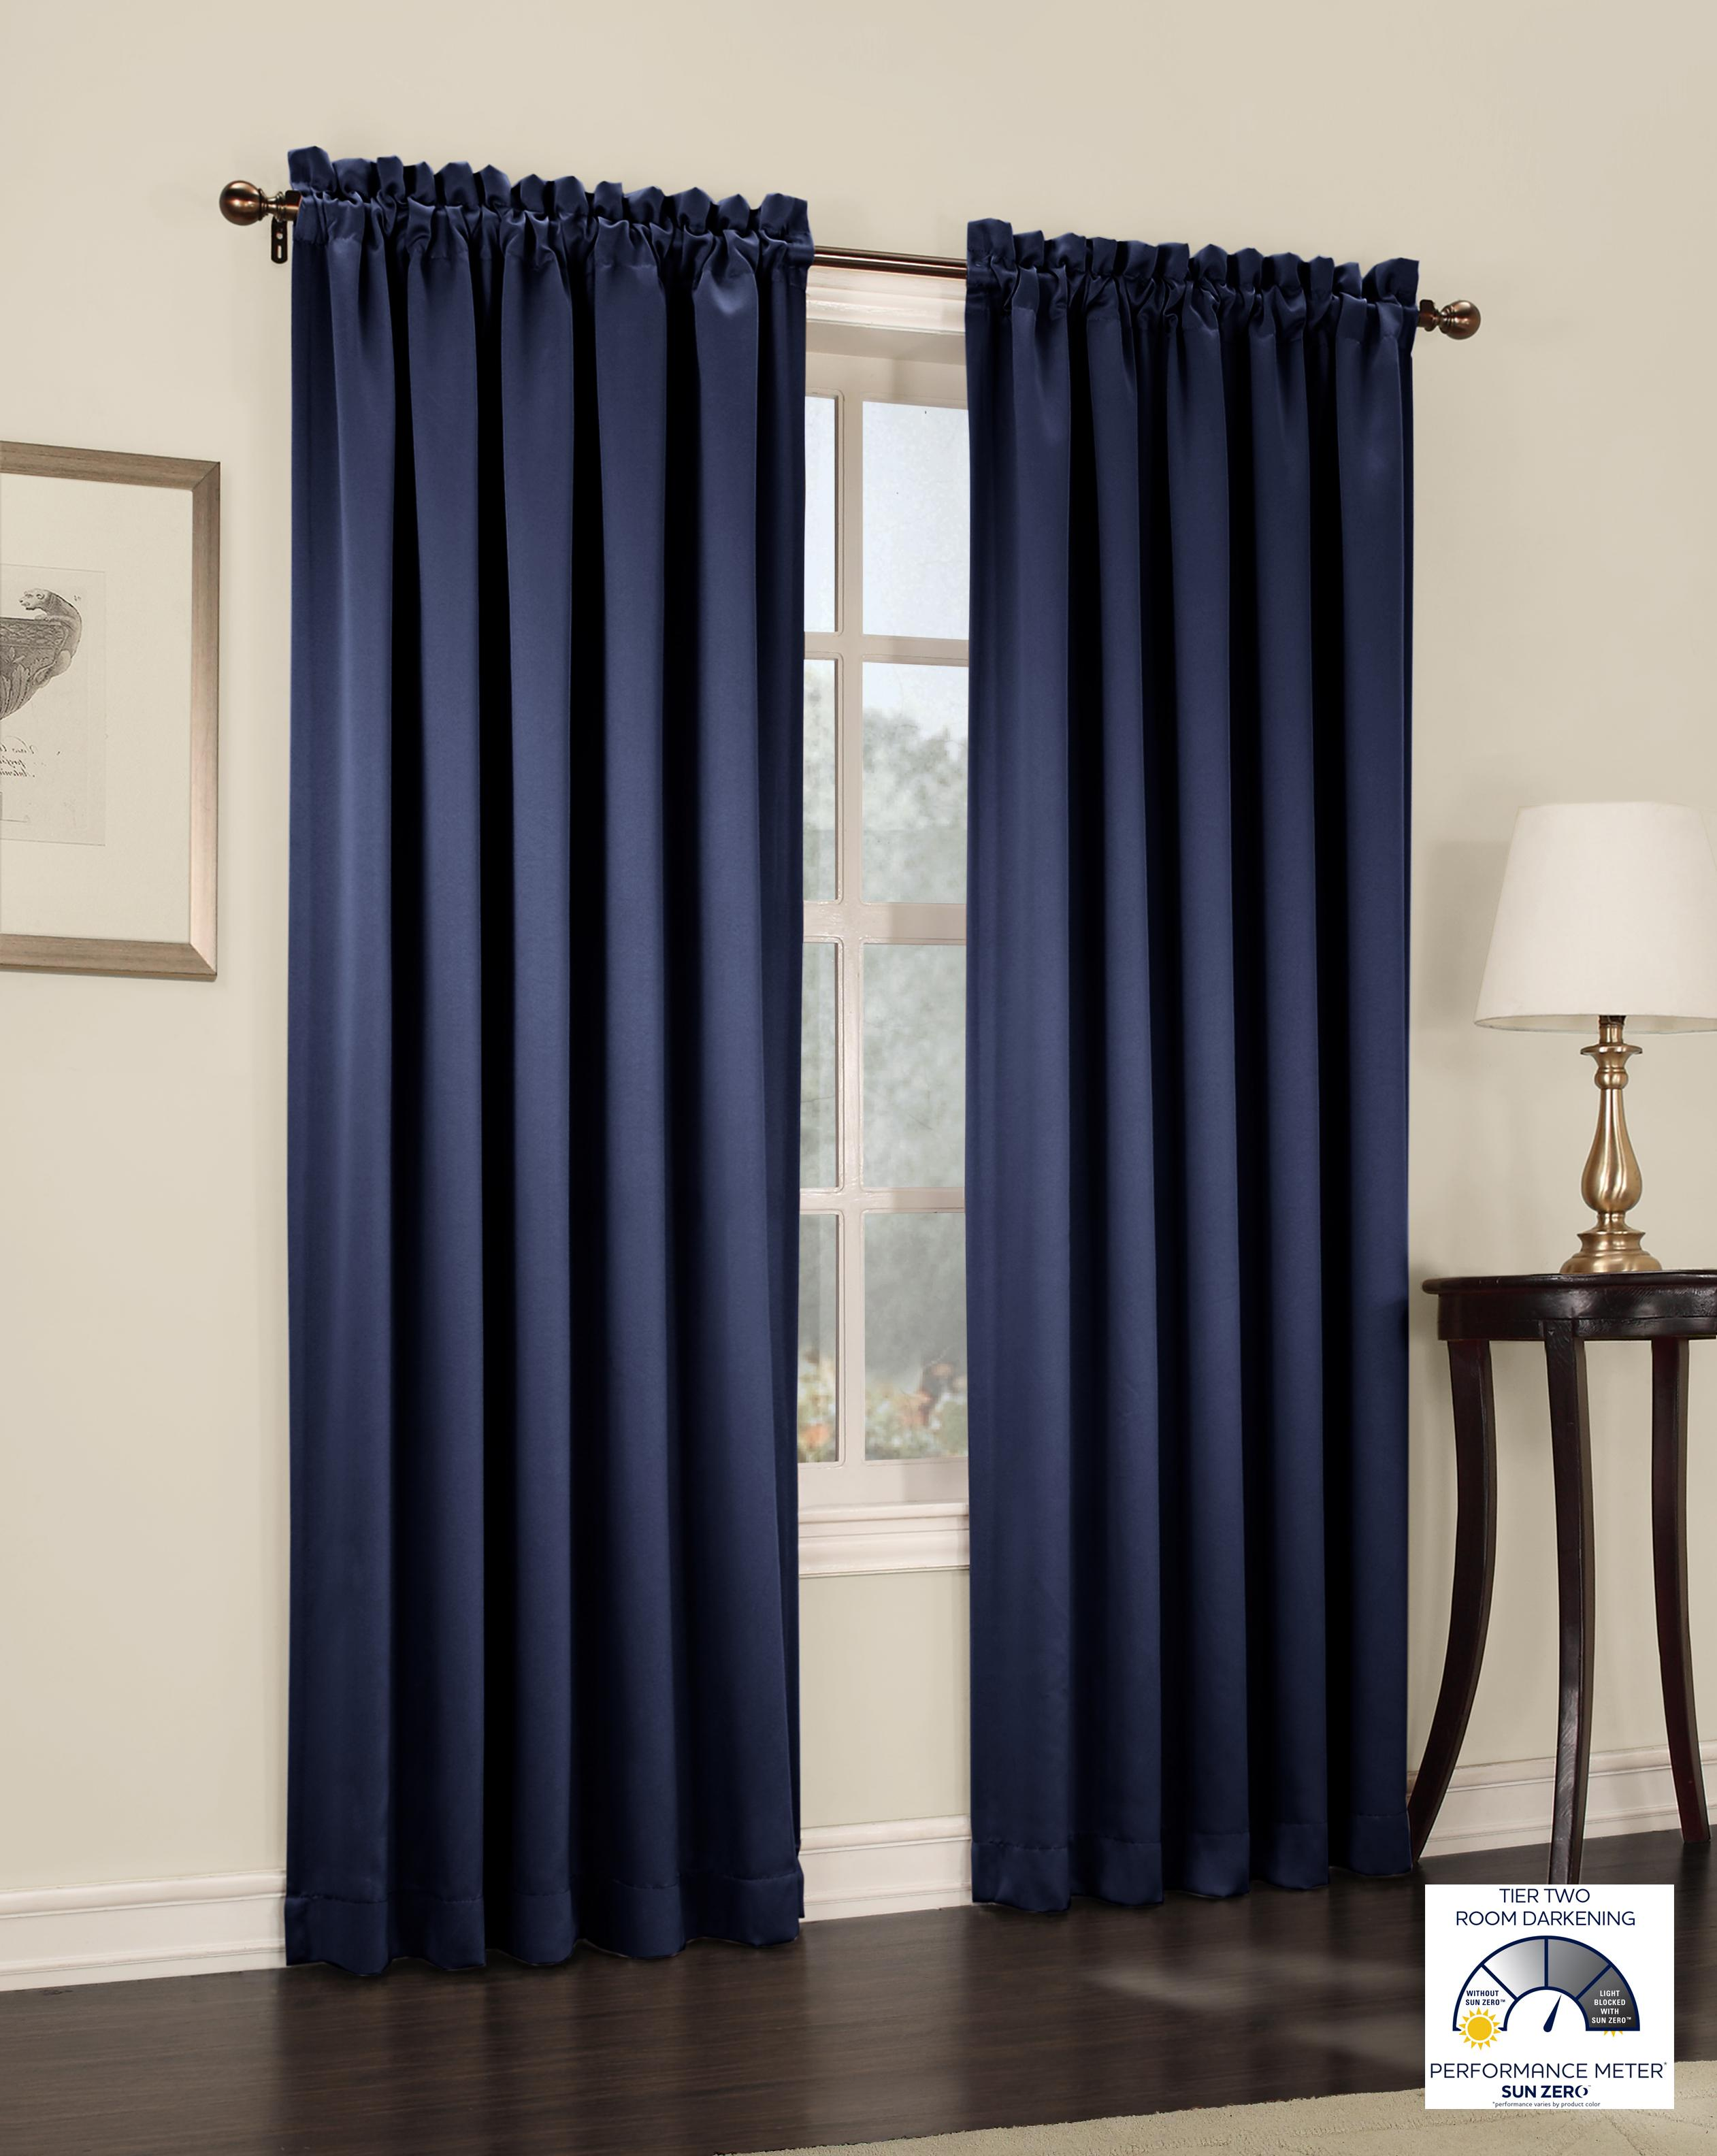 Soundproof Curtains Walmart | Soundproof Curtains Target | Target Roman Shades